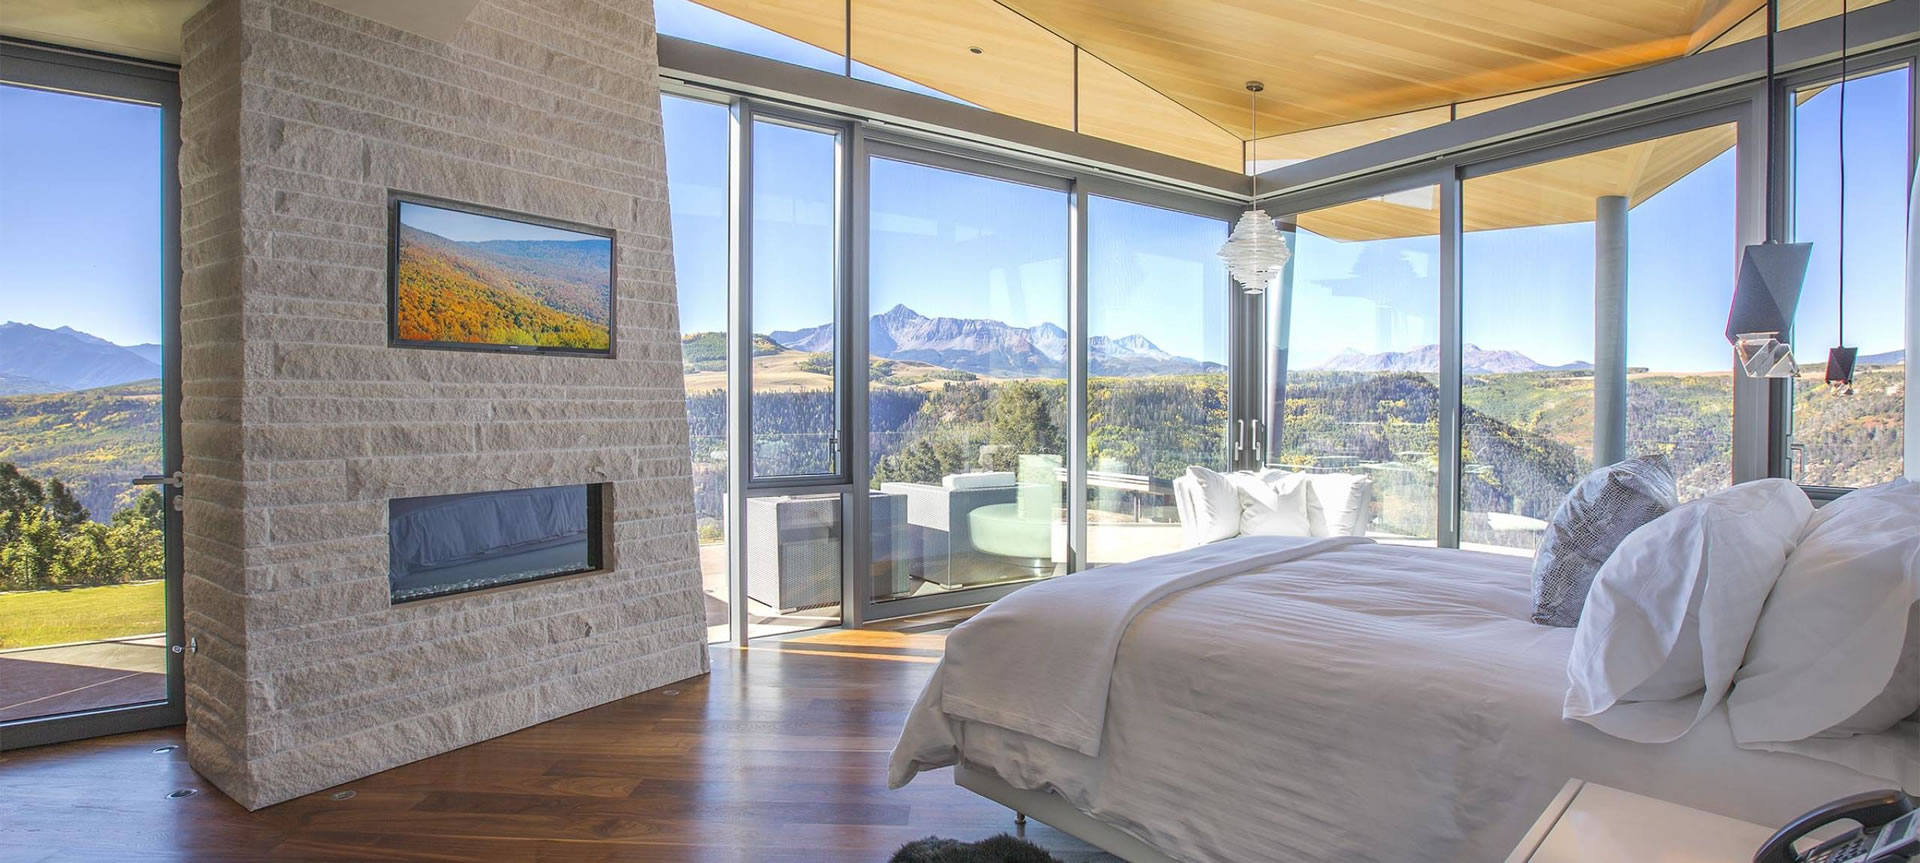 Sunset Ridge Bedroom with a View